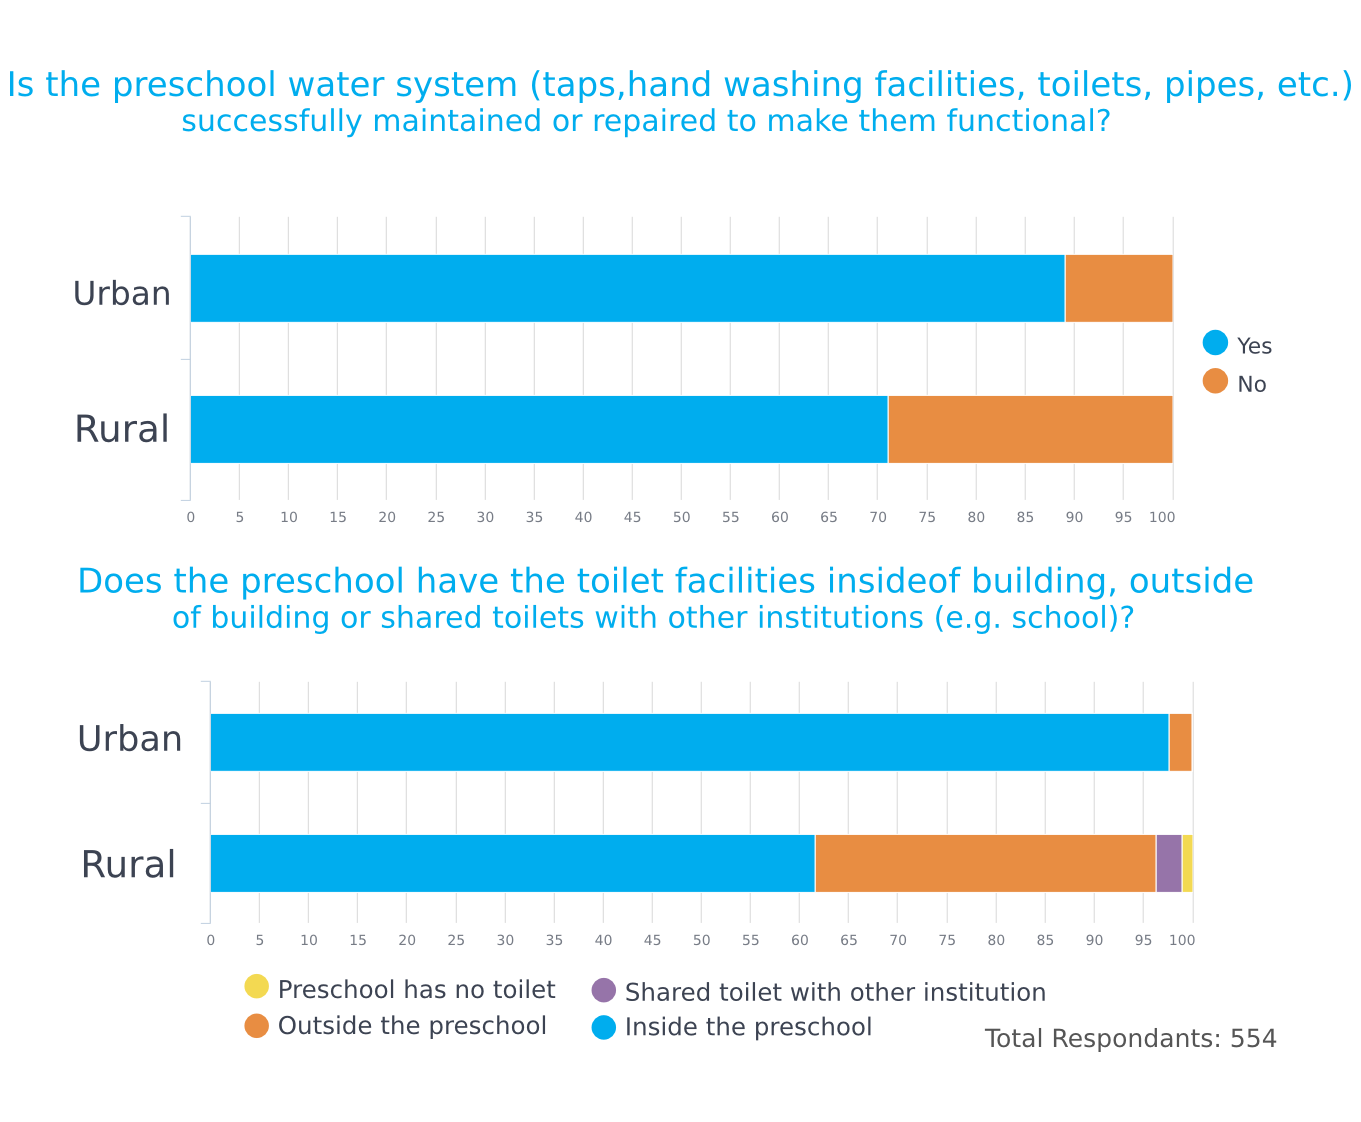 Charts About Plumbing and Toilets